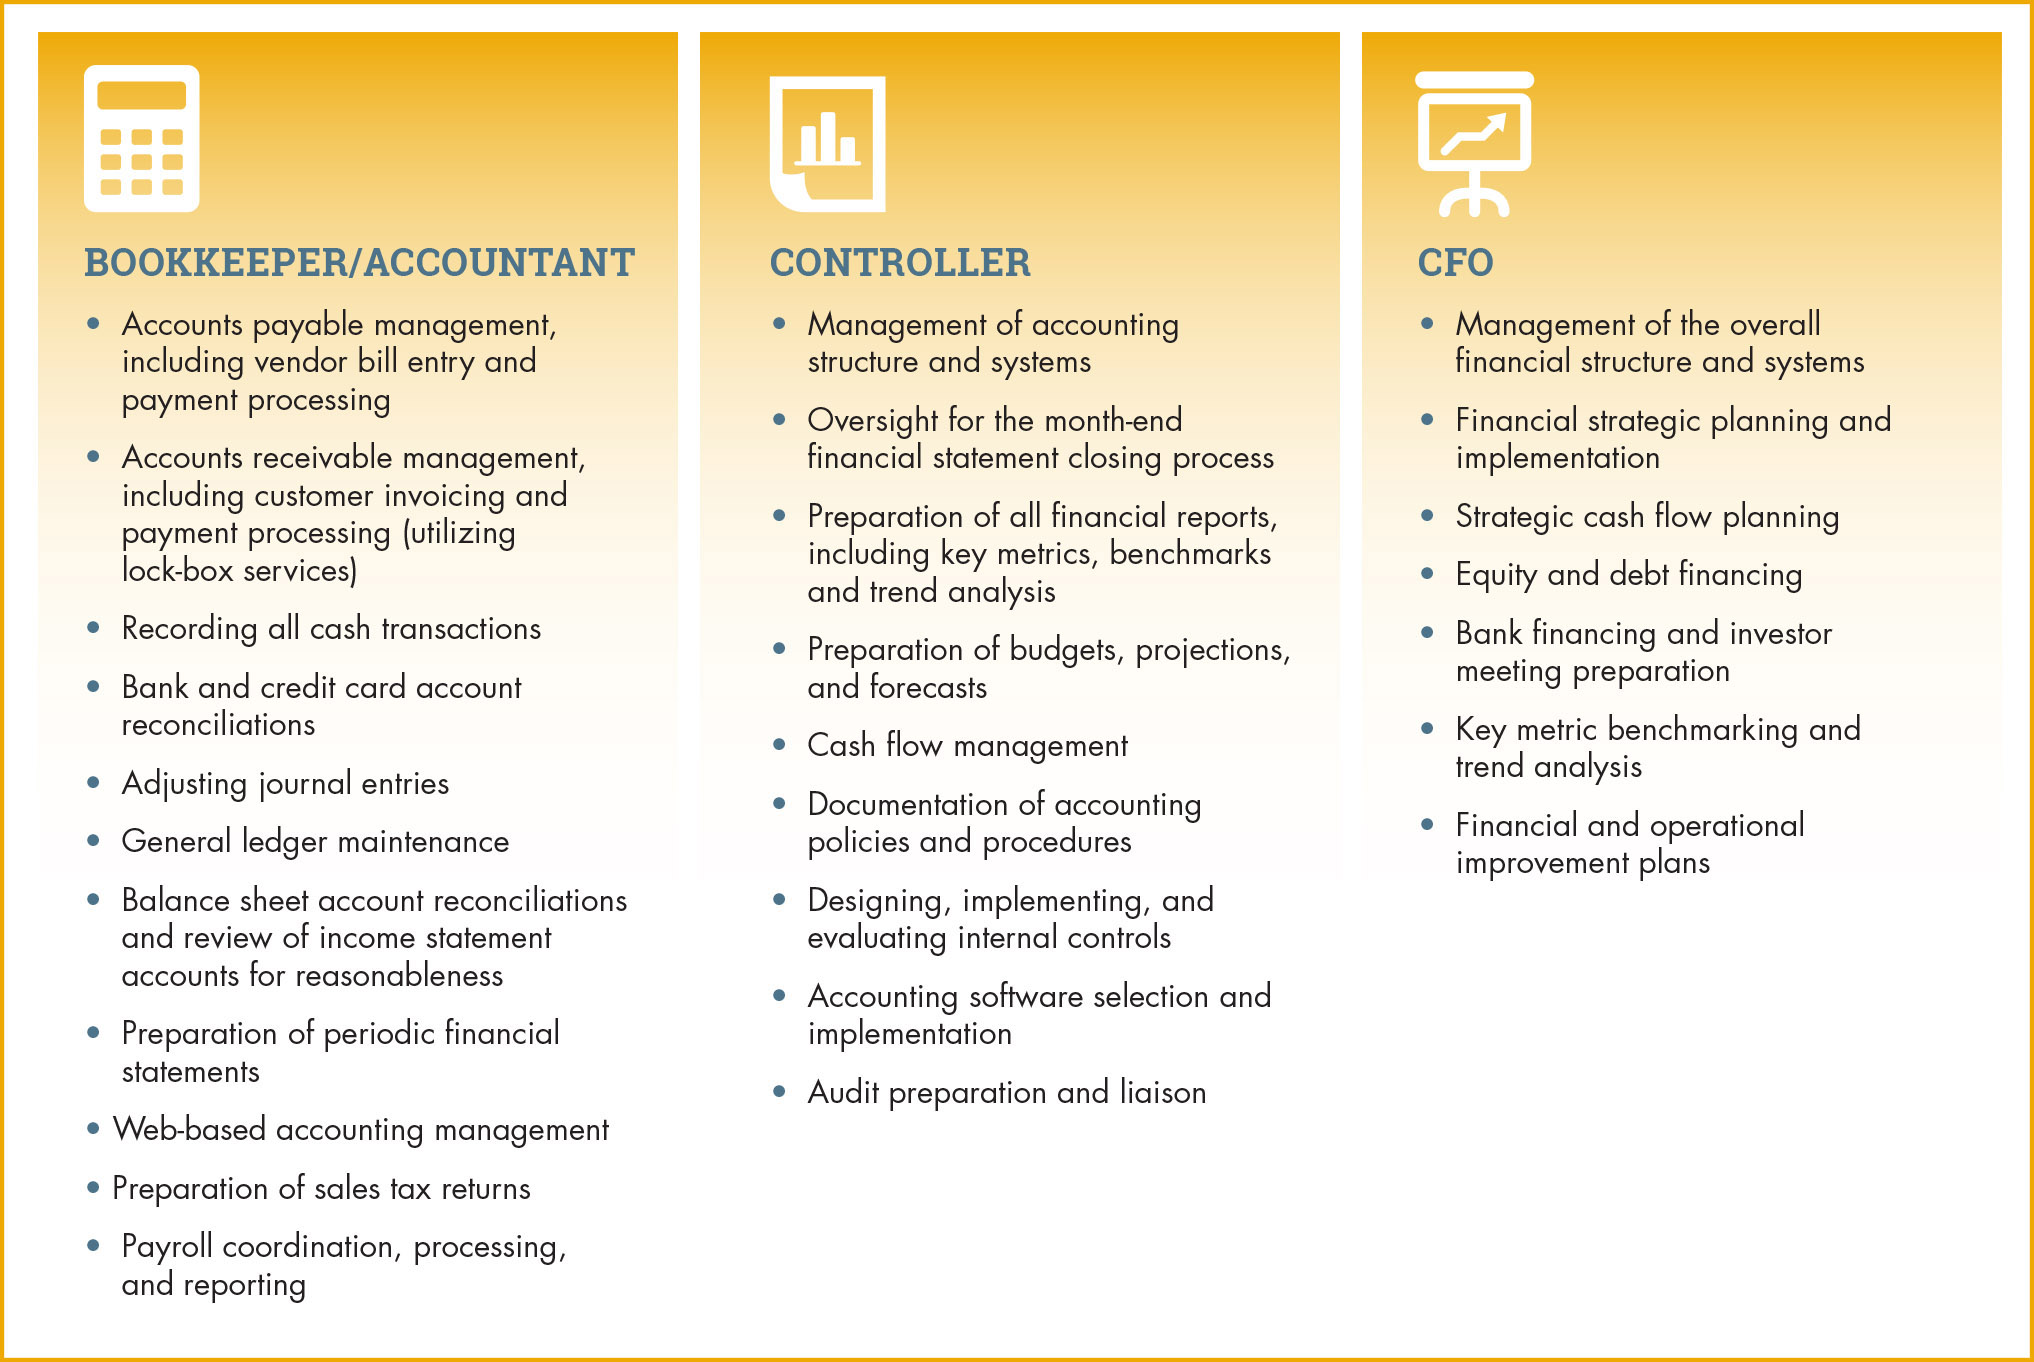 Outsourced Accounting Roles